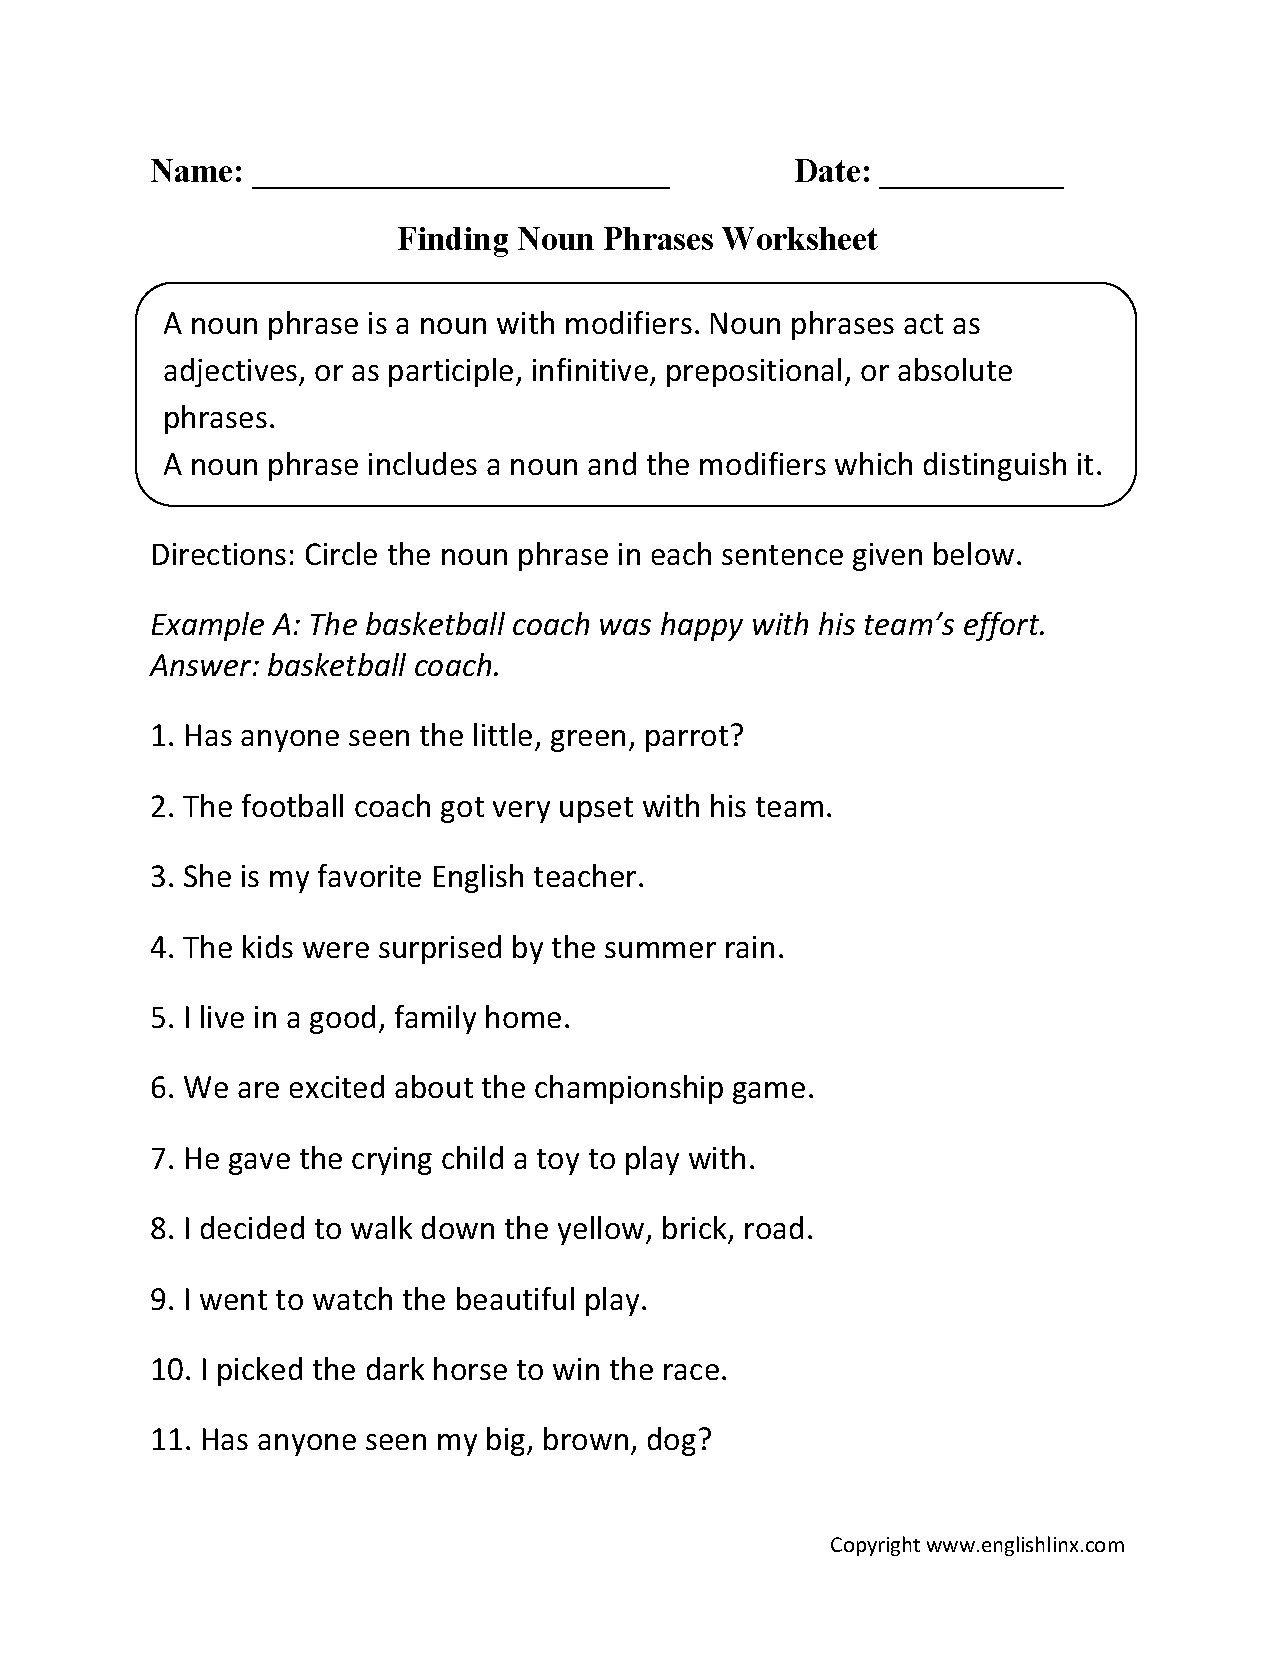 worksheet Homophones Worksheet Pdf finding noun phrases worksheets teaching nouns pinterest worksheets